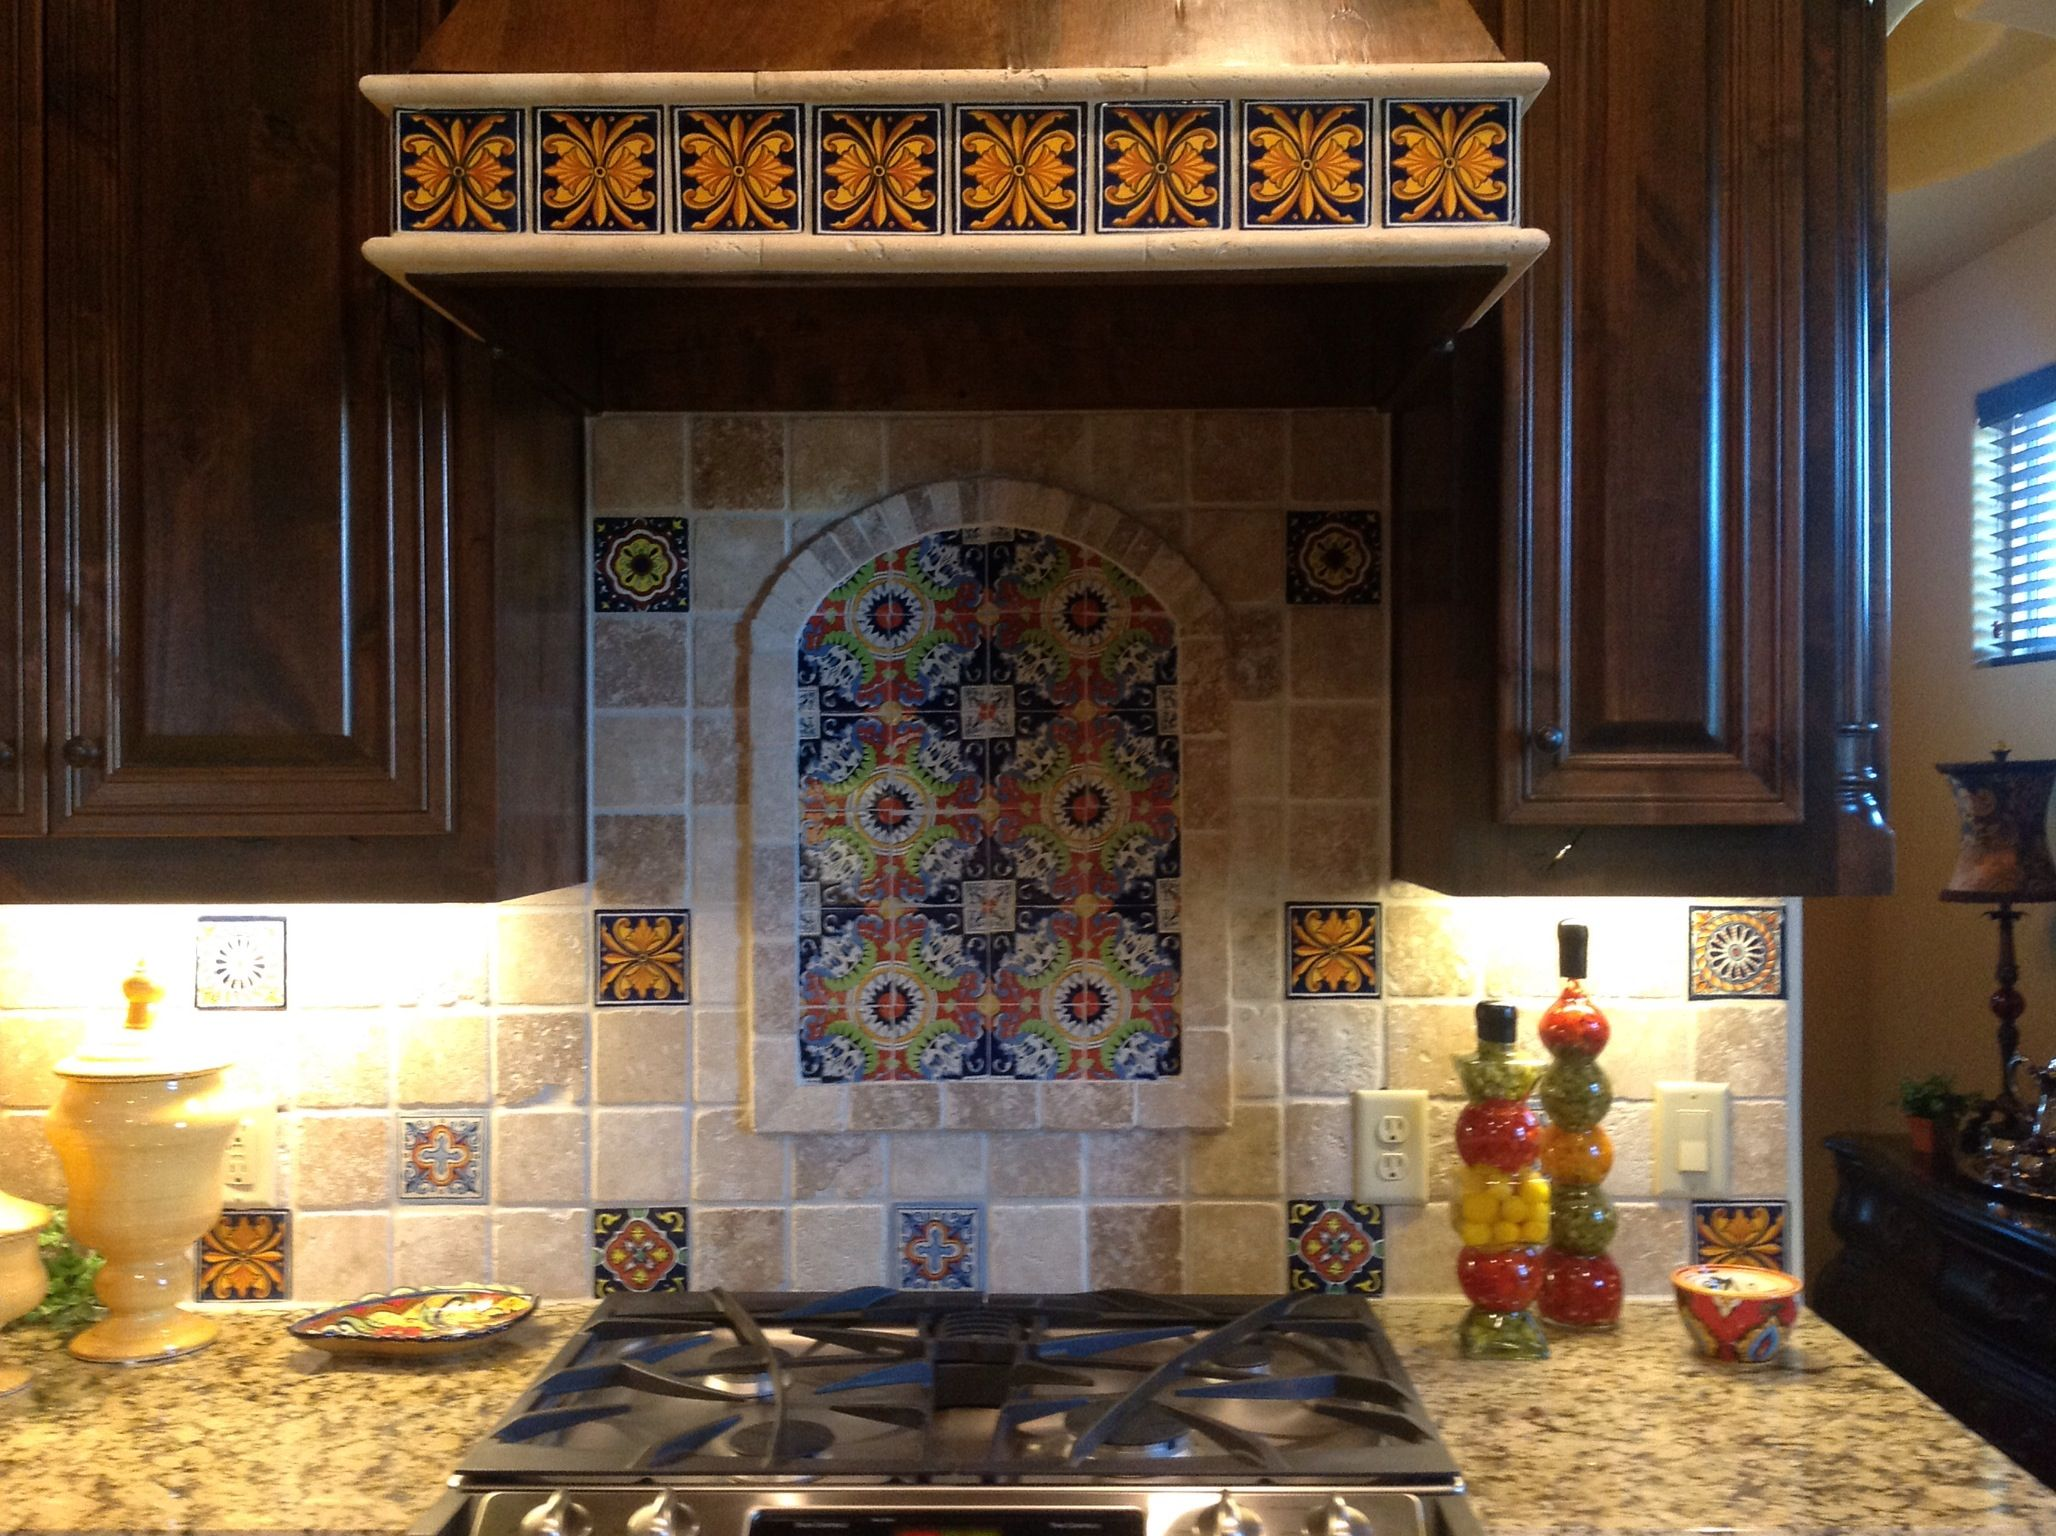 Talavera Backsplash Like Decorative Tiles Interspersed With